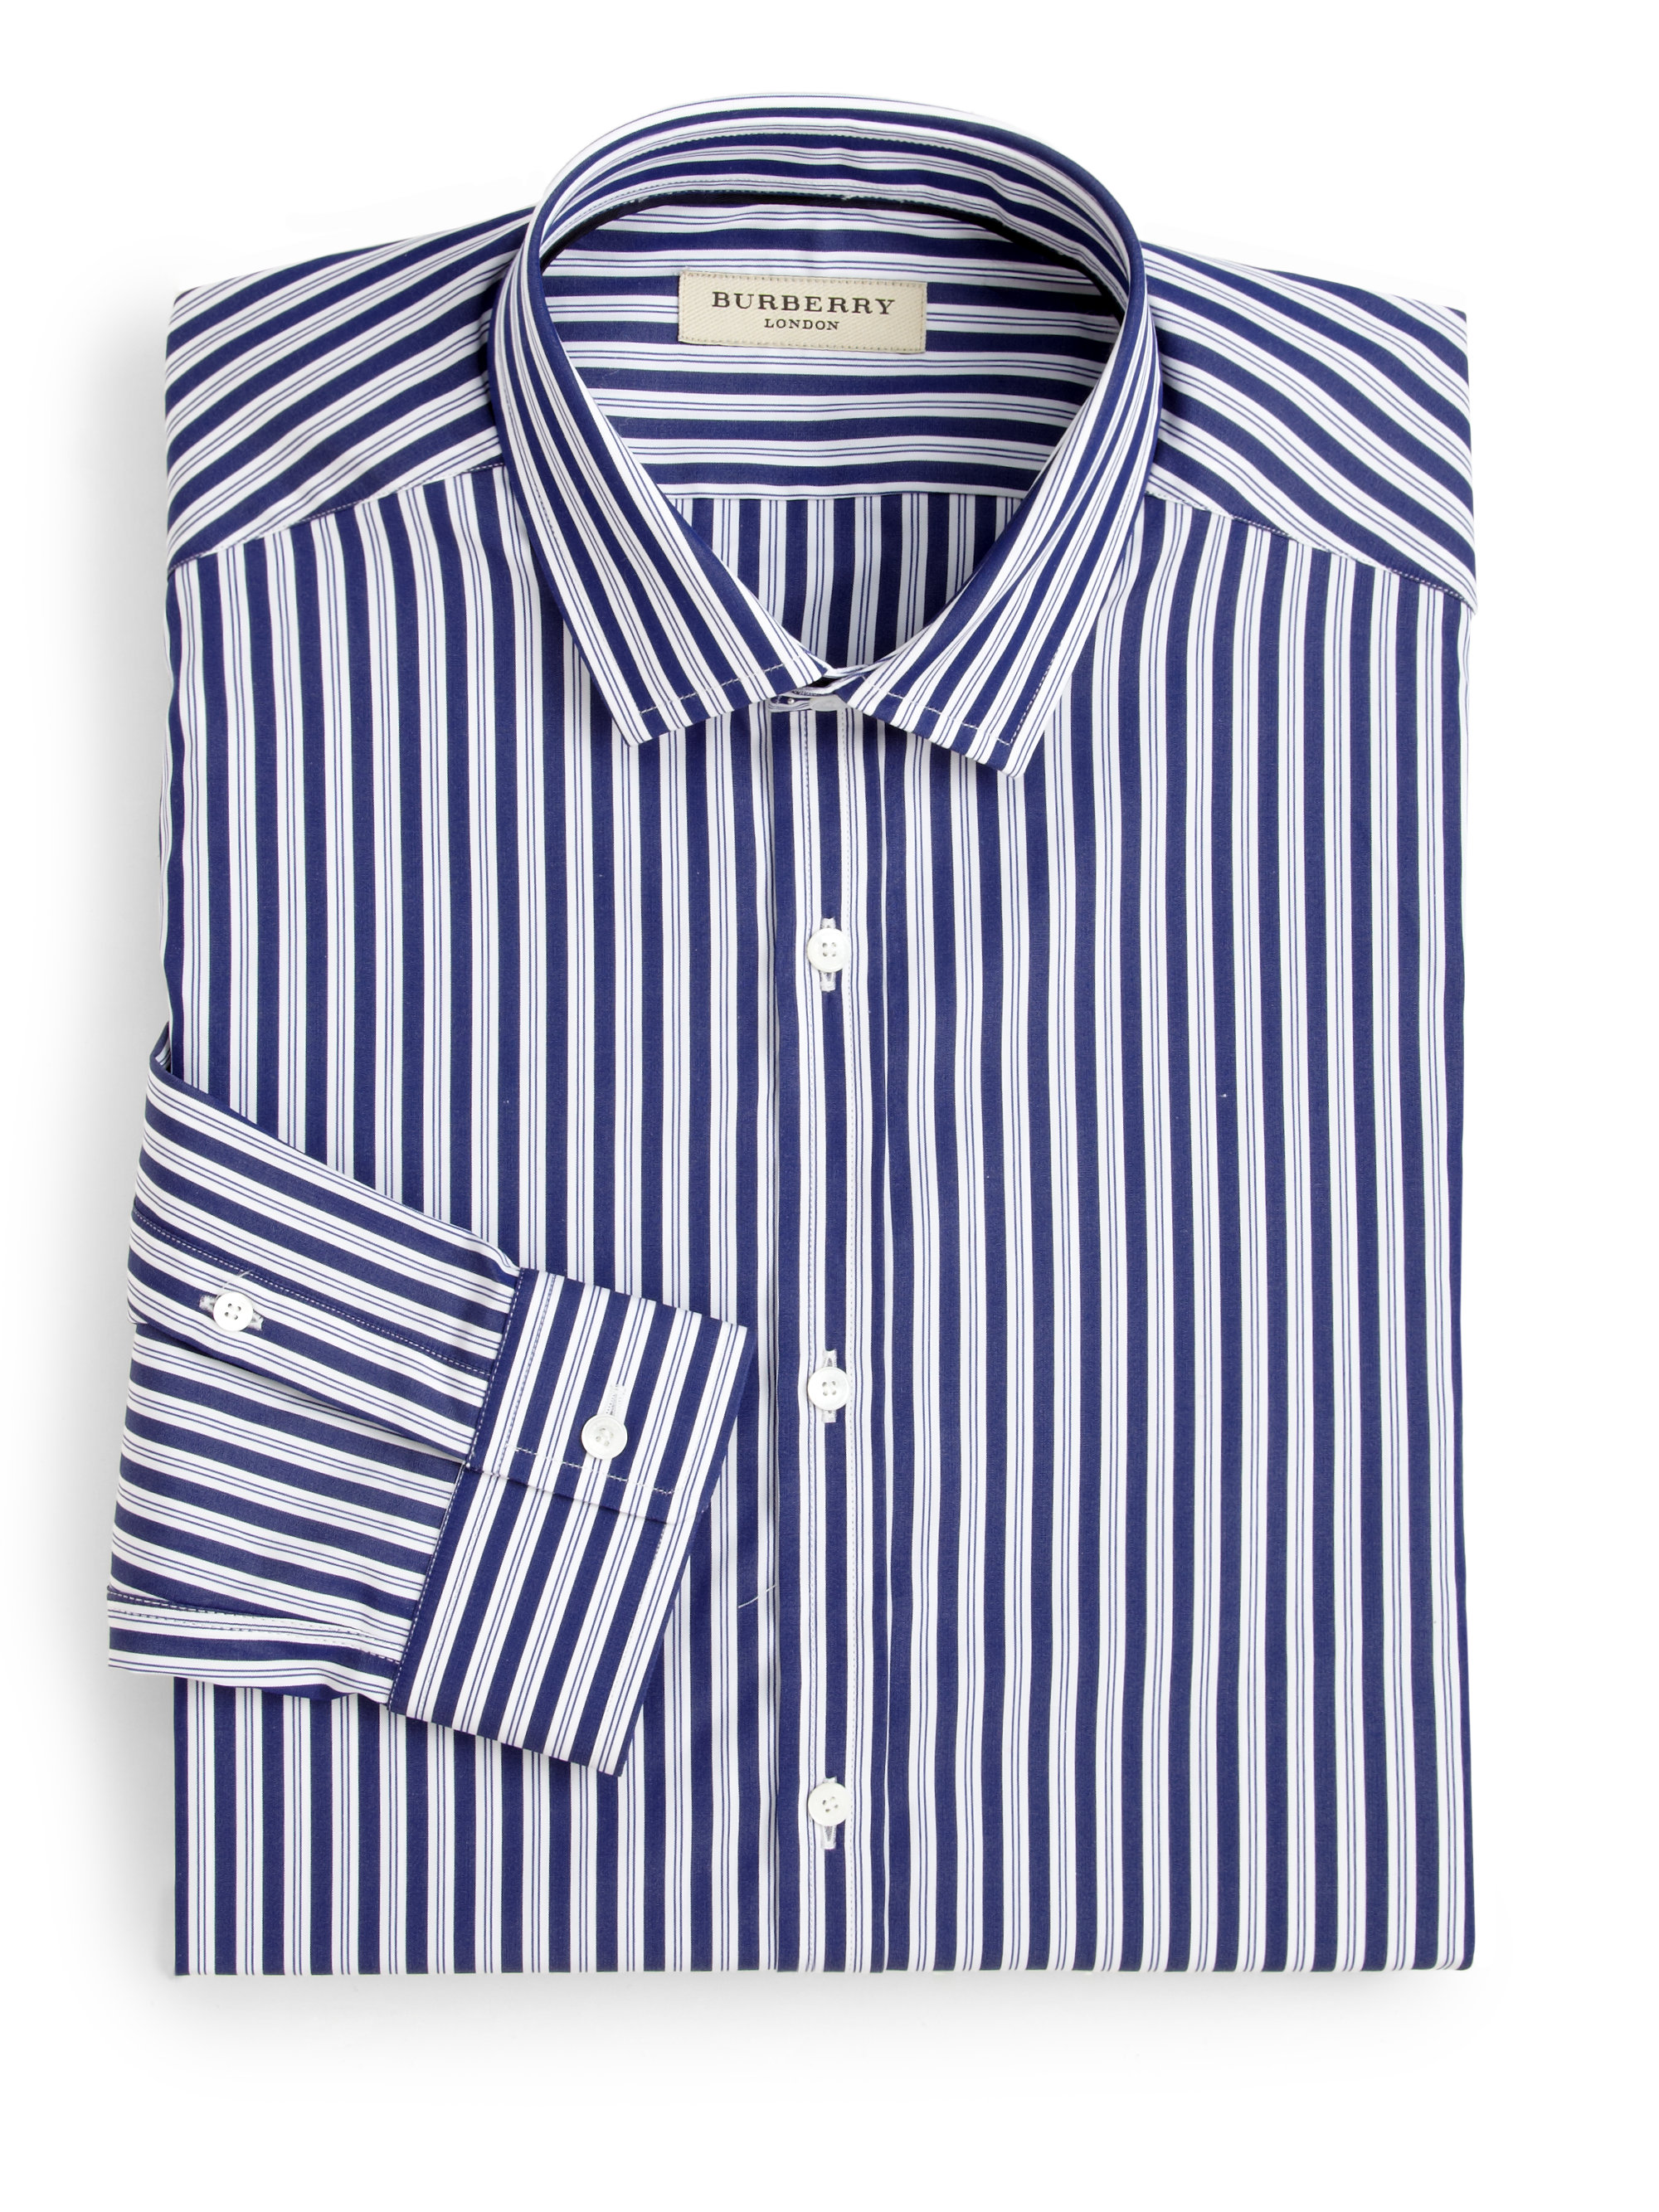 burberry halesforth striped dress shirt in blue for men lyst